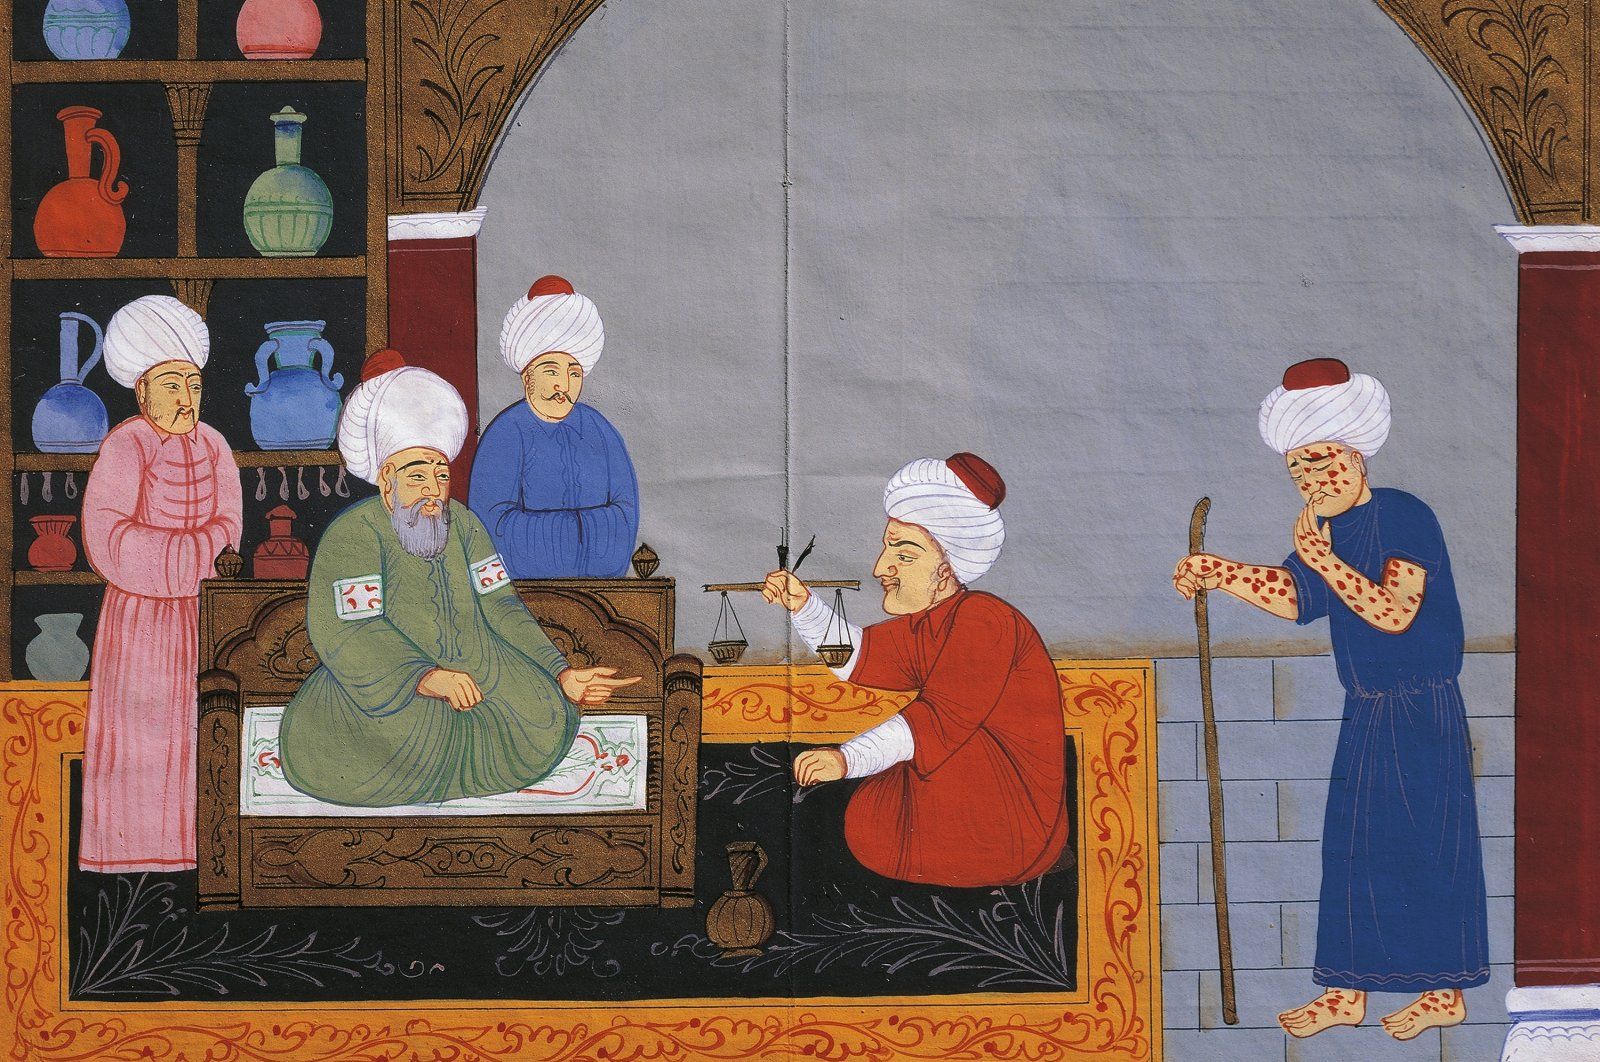 An Ottoman miniature depicts the preparation of medicines for the treatment of a patient suffering from smallpox by Ibn Sina (L), also known as Avicenna. (Getty Images)